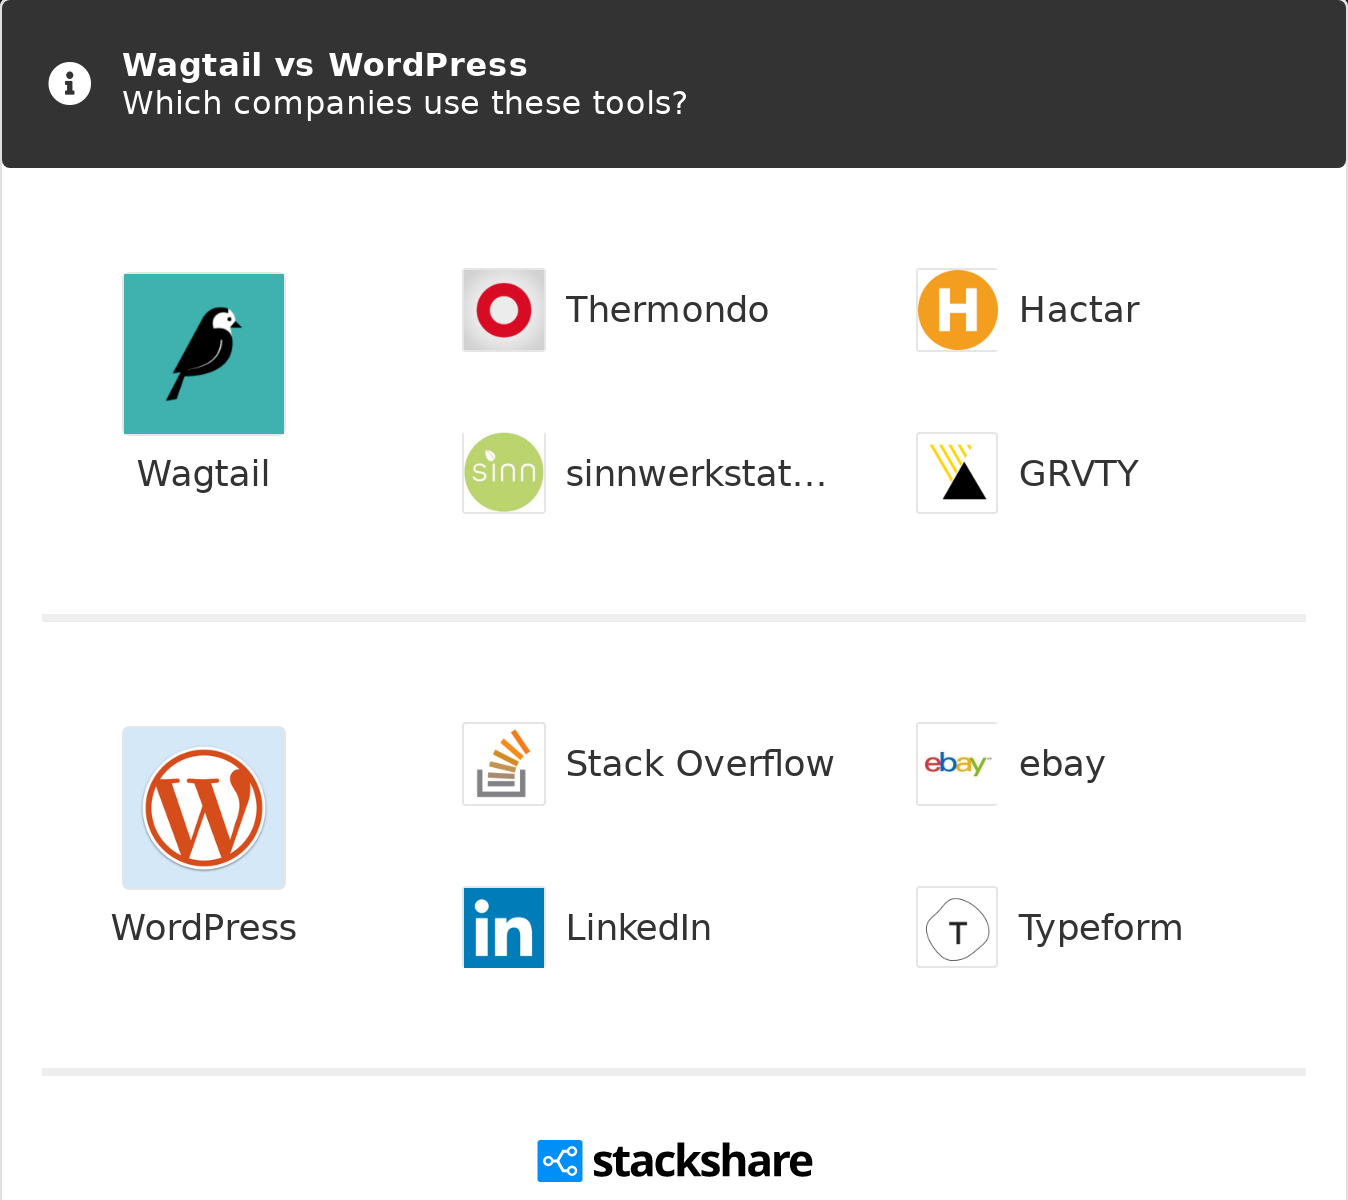 Wagtail vs WordPress | What are the differences?